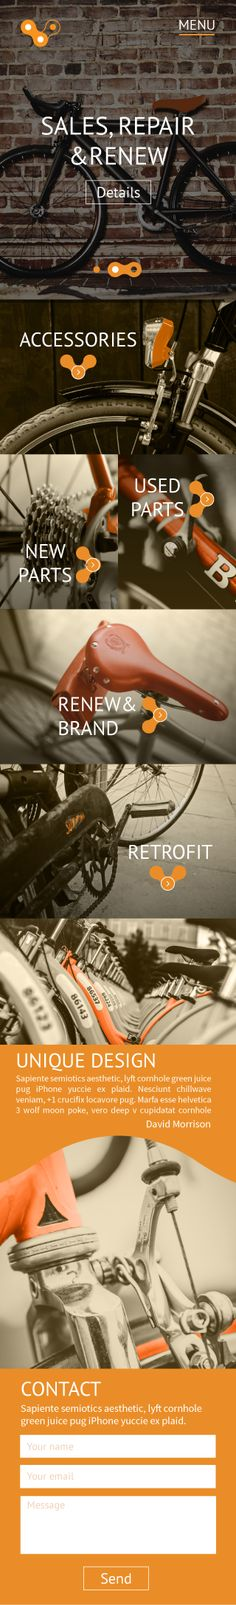 Industrial UI design - Bike Shop (mobile view)